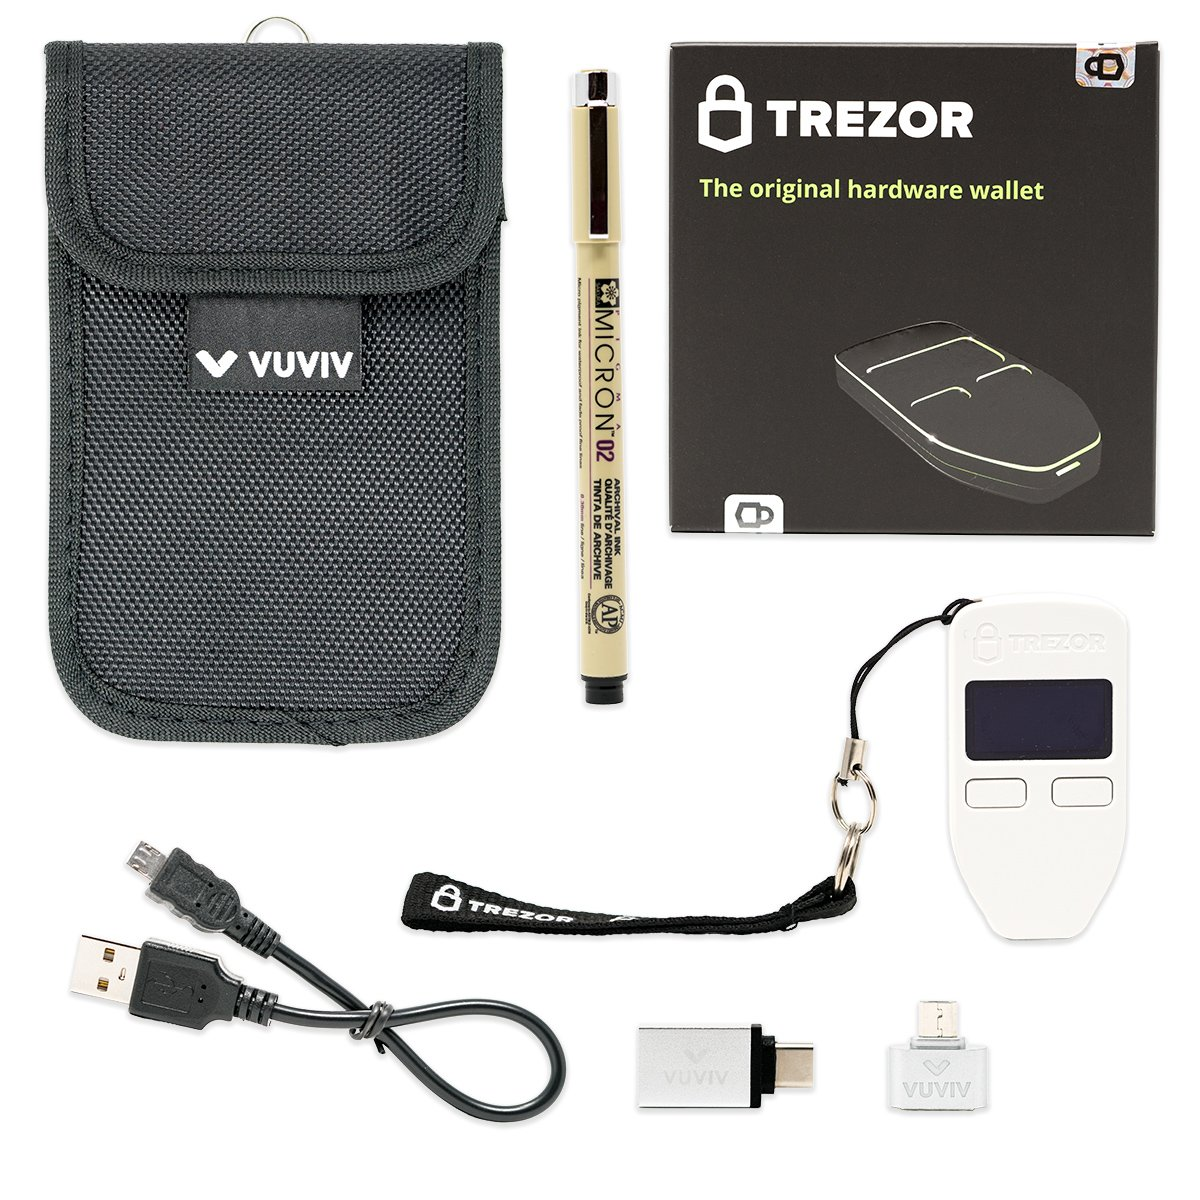 VUVIV Trezor White Bitcoin Wallet Bundle With RFID Pouch, 2 USB Adapters for Greater Connectivity & 1 Sakura Archival Ink Pen for Recovery Seed Sheet (5 items)